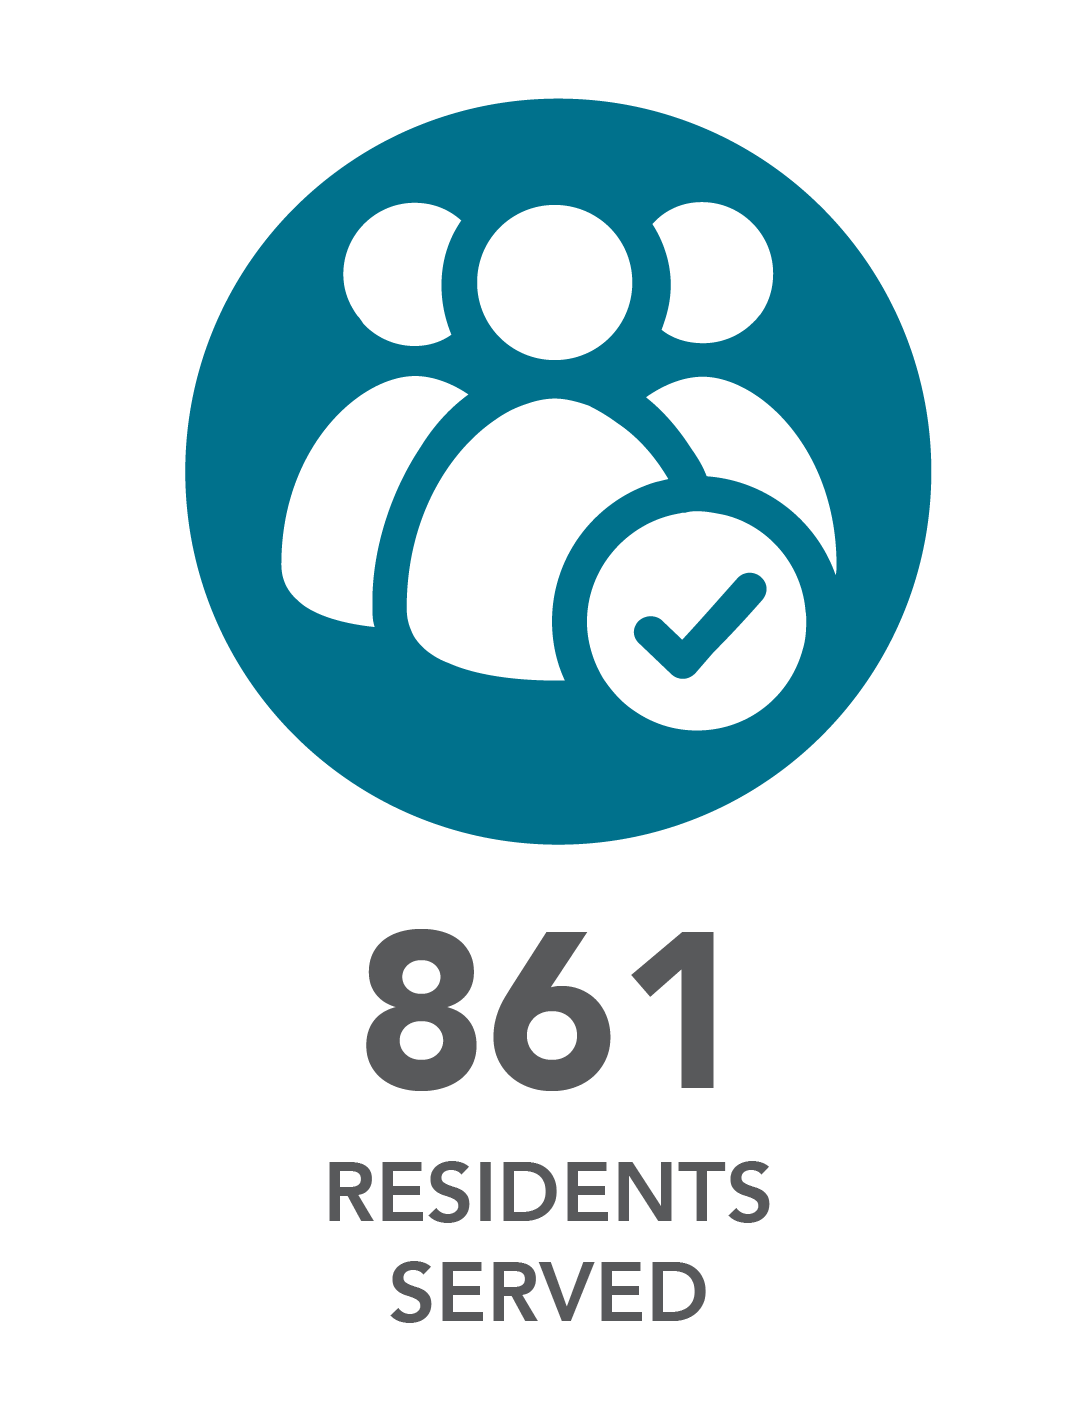 861 residents served.